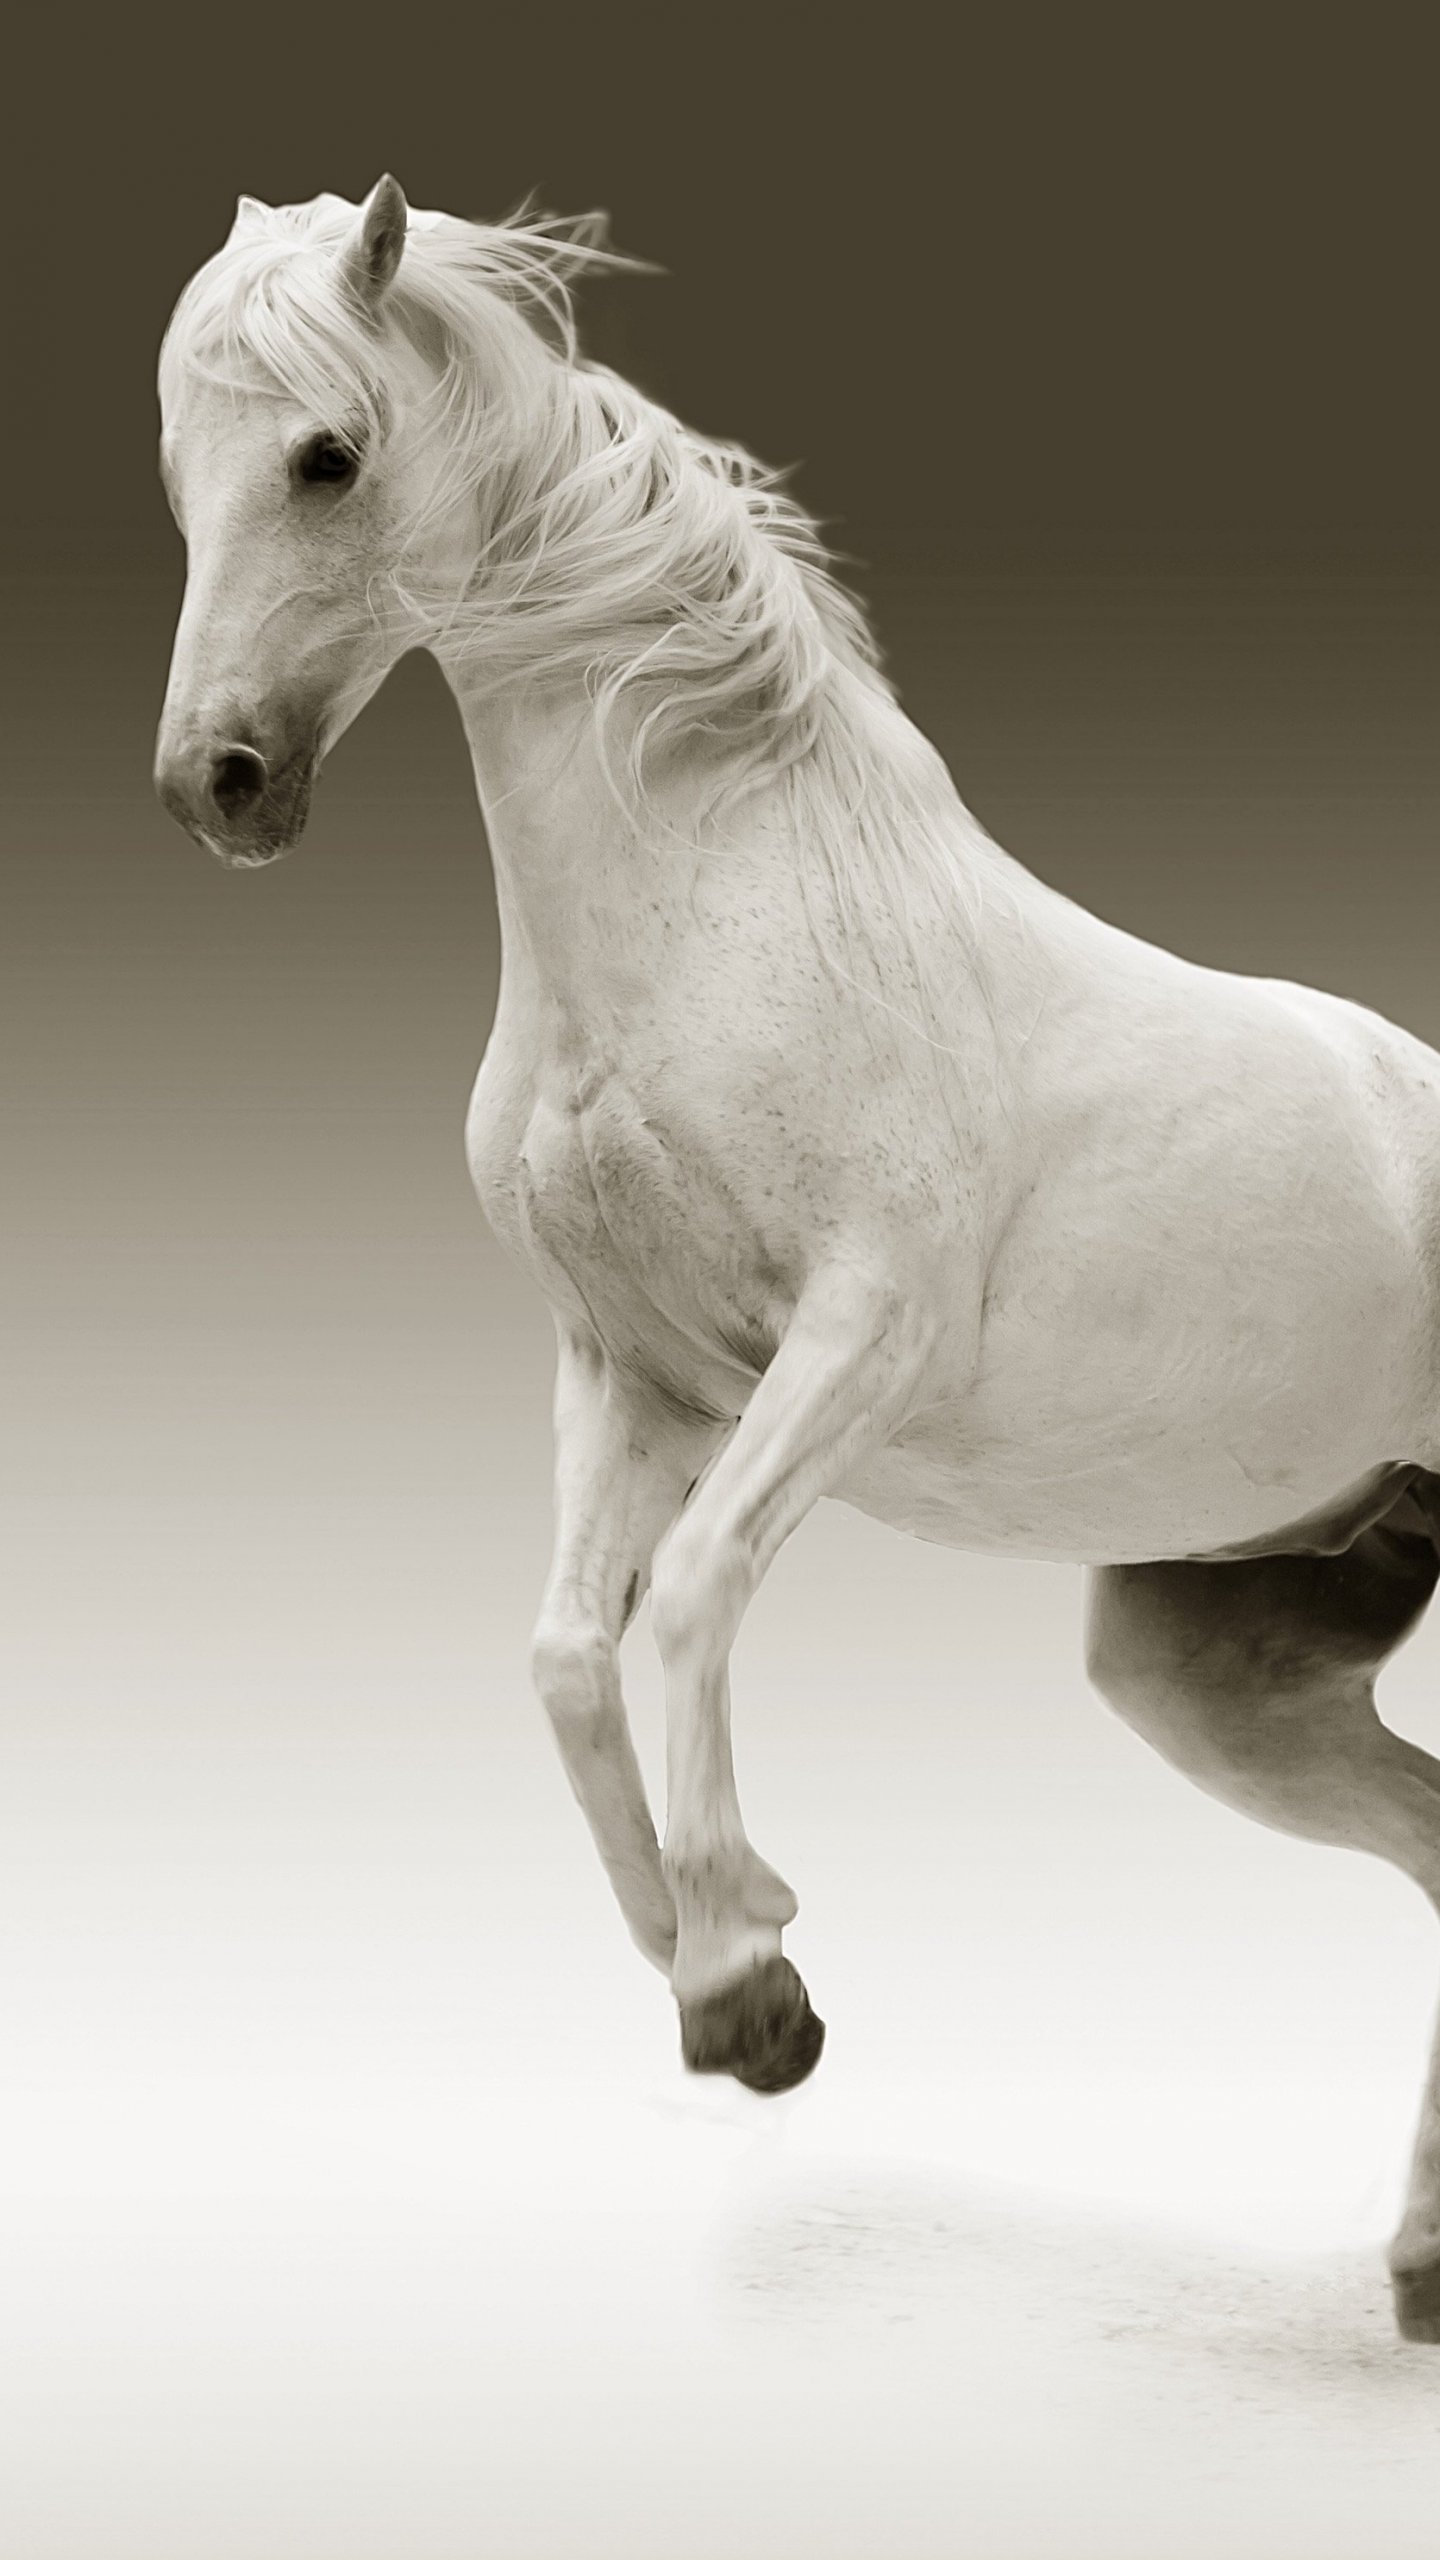 White Horse Wallpaper Iphone Android Desktop Backgrounds